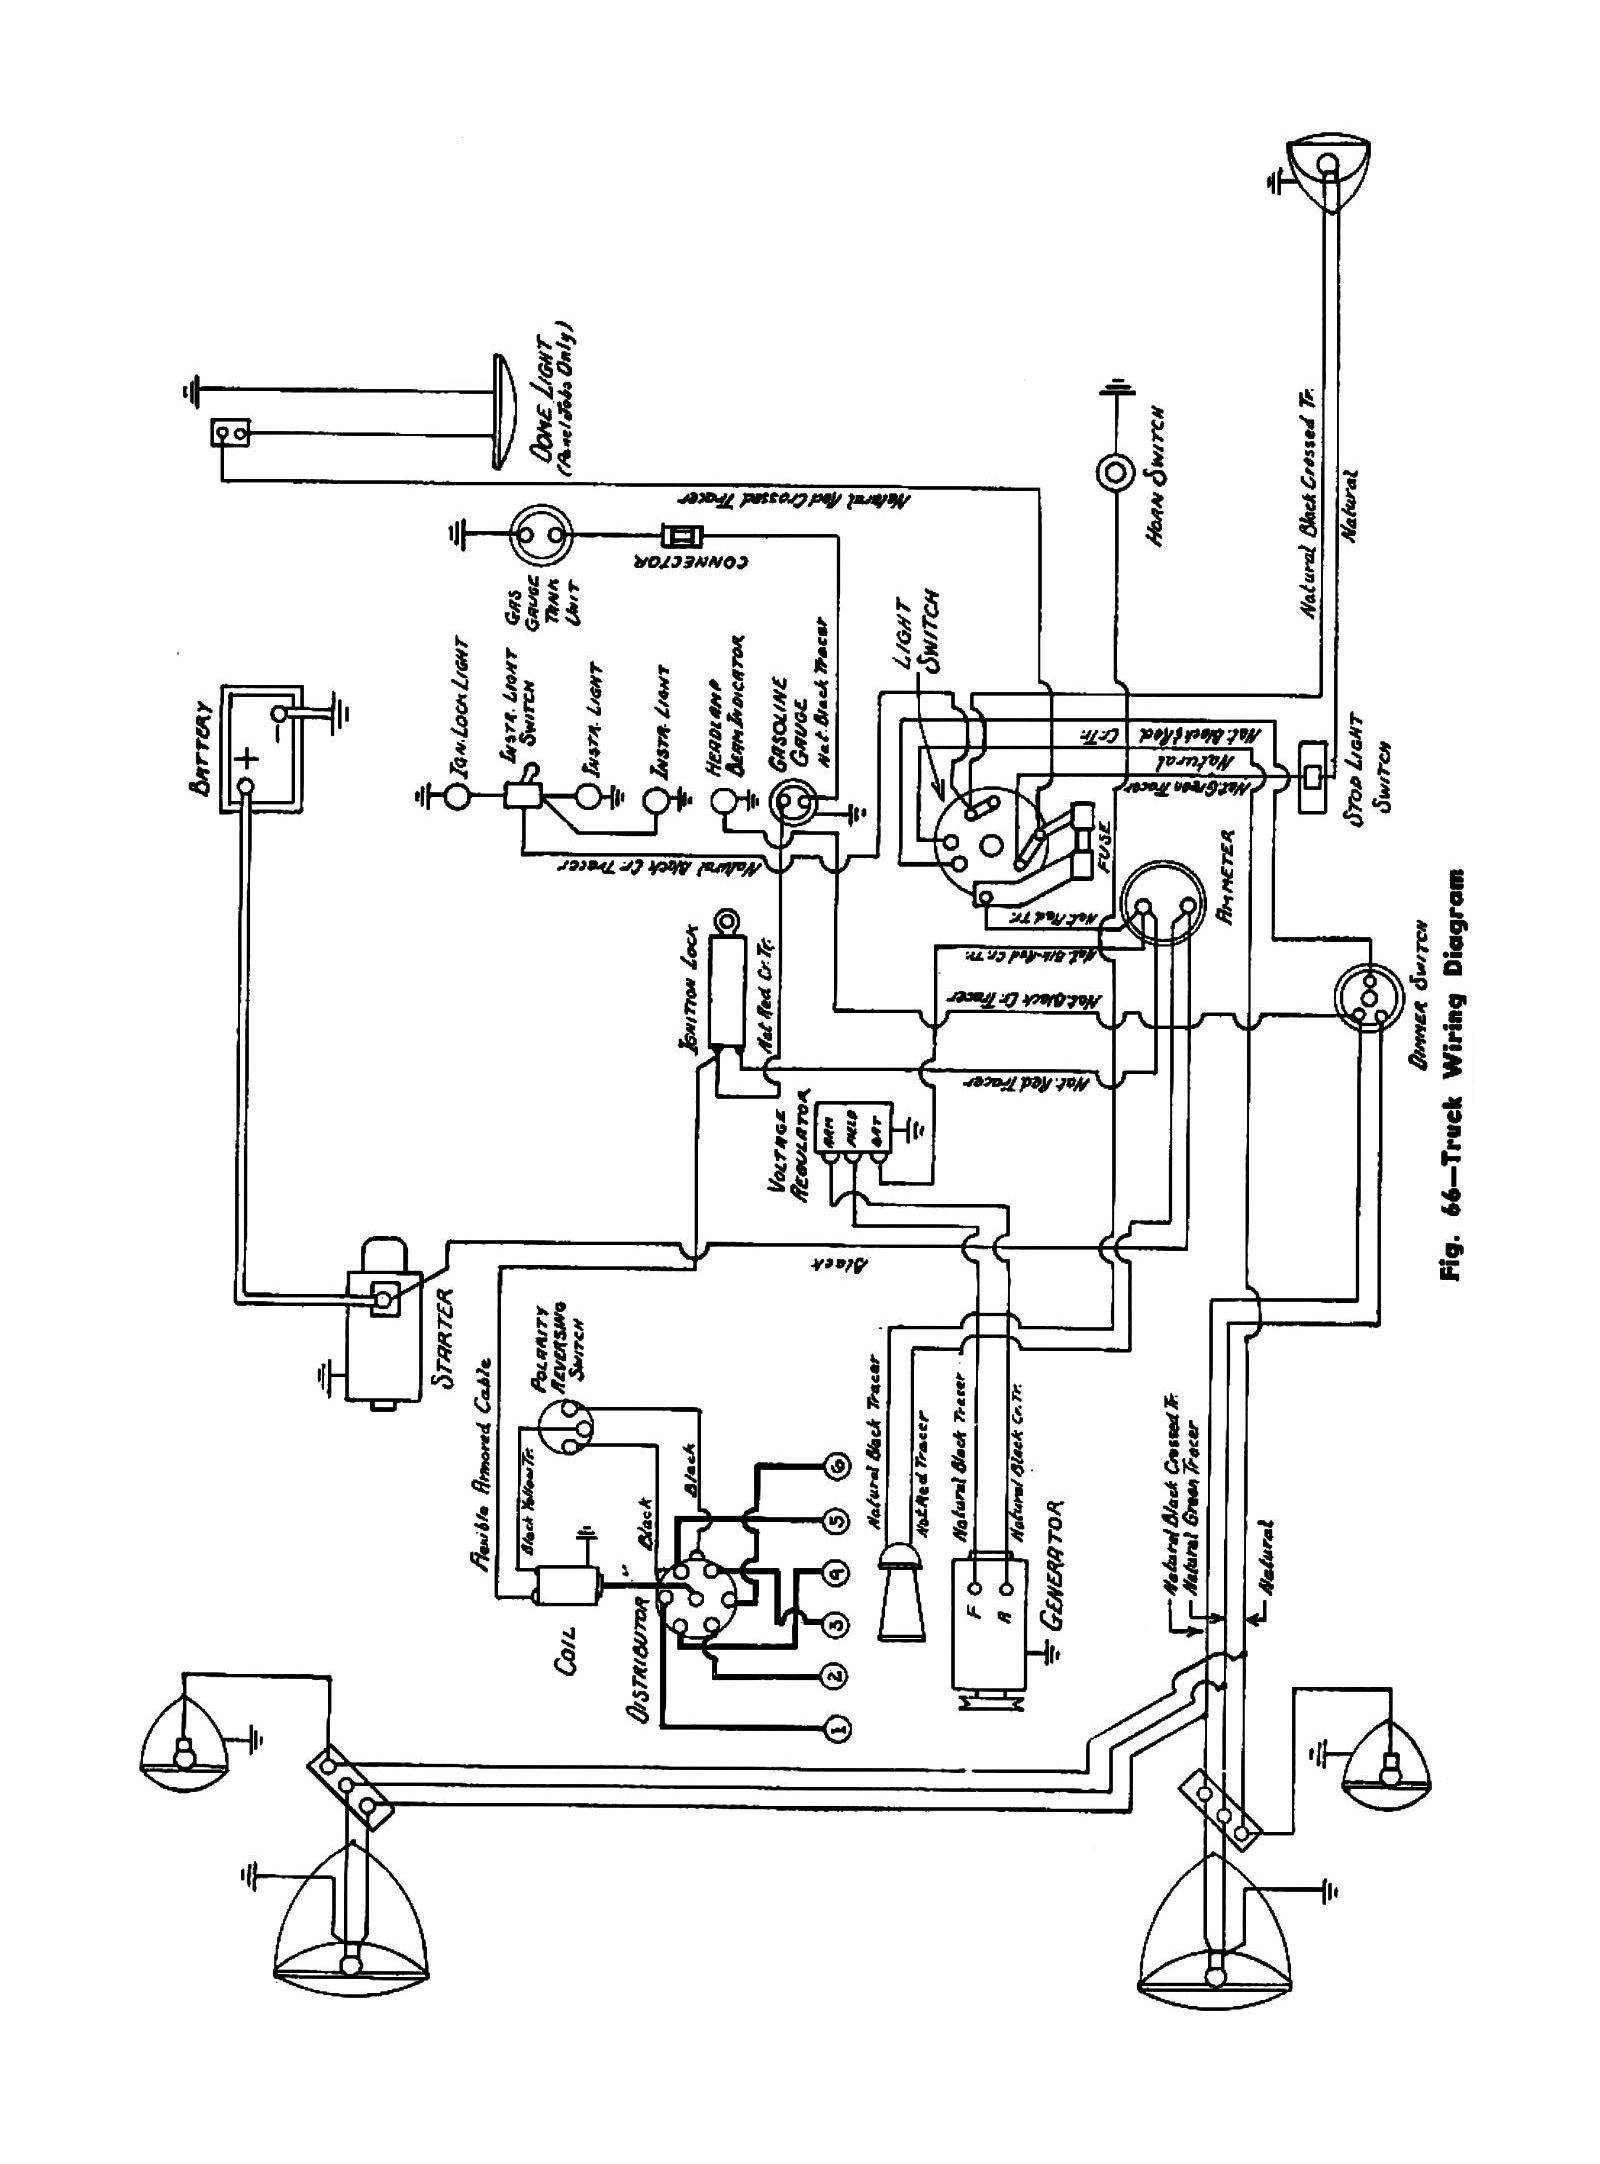 45truck ihc truck wiring diagrams mazda truck wiring diagrams \u2022 free Chevy Truck Fuse Box Diagram at metegol.co